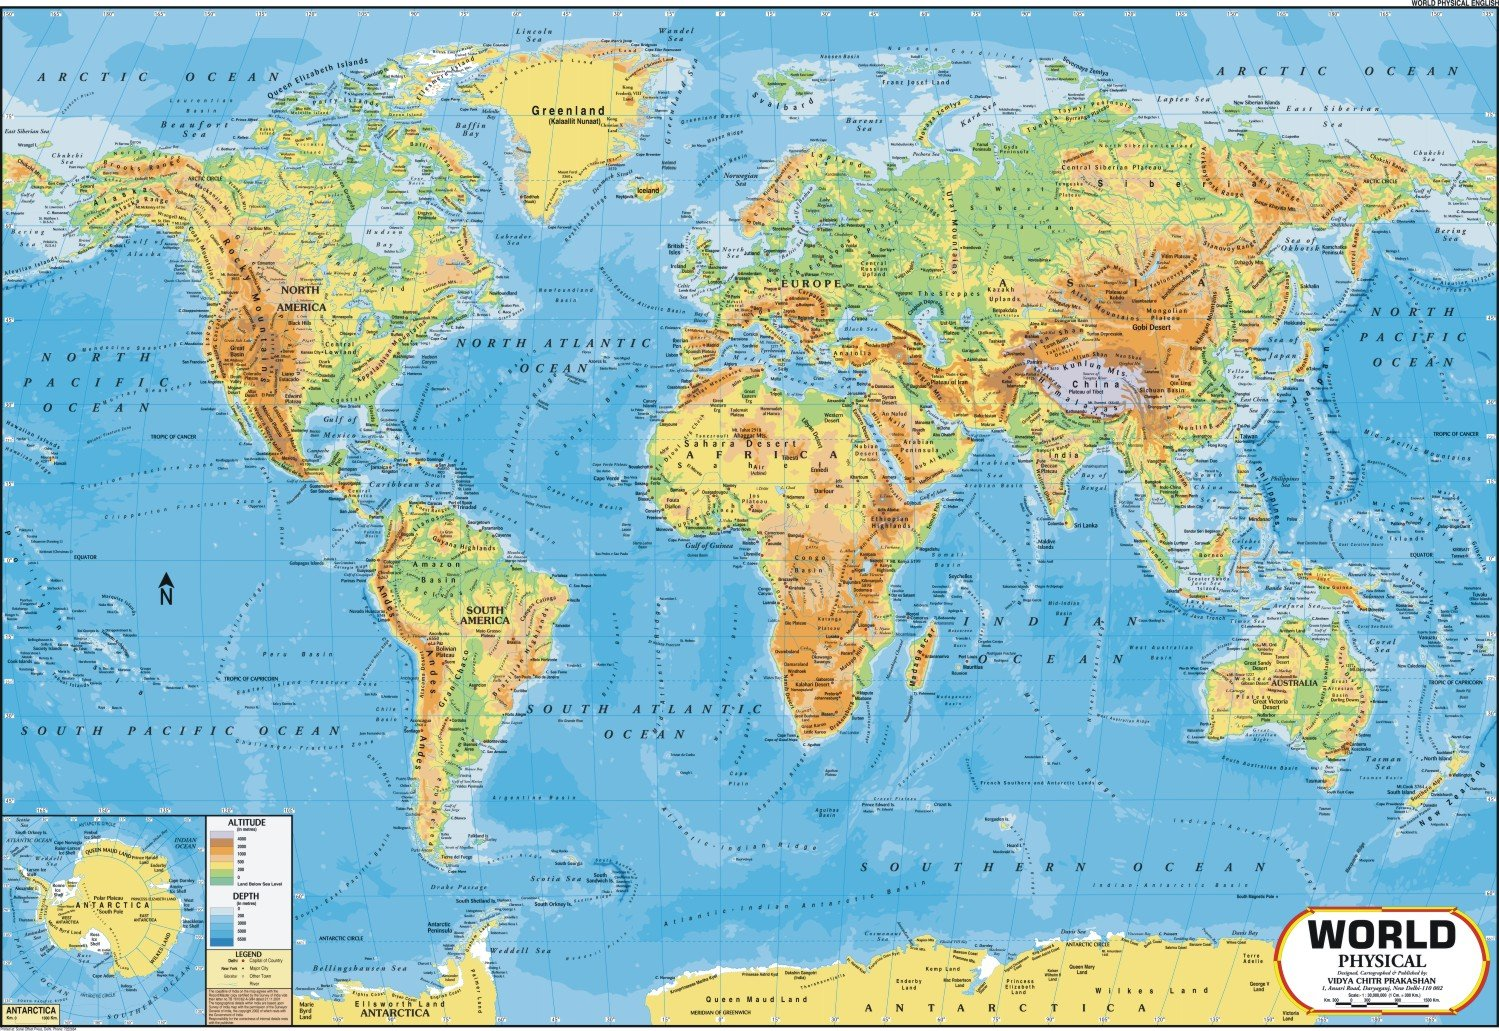 Buy World Map - Physical (100 x 70 cm) Book Online at Low Prices in ...